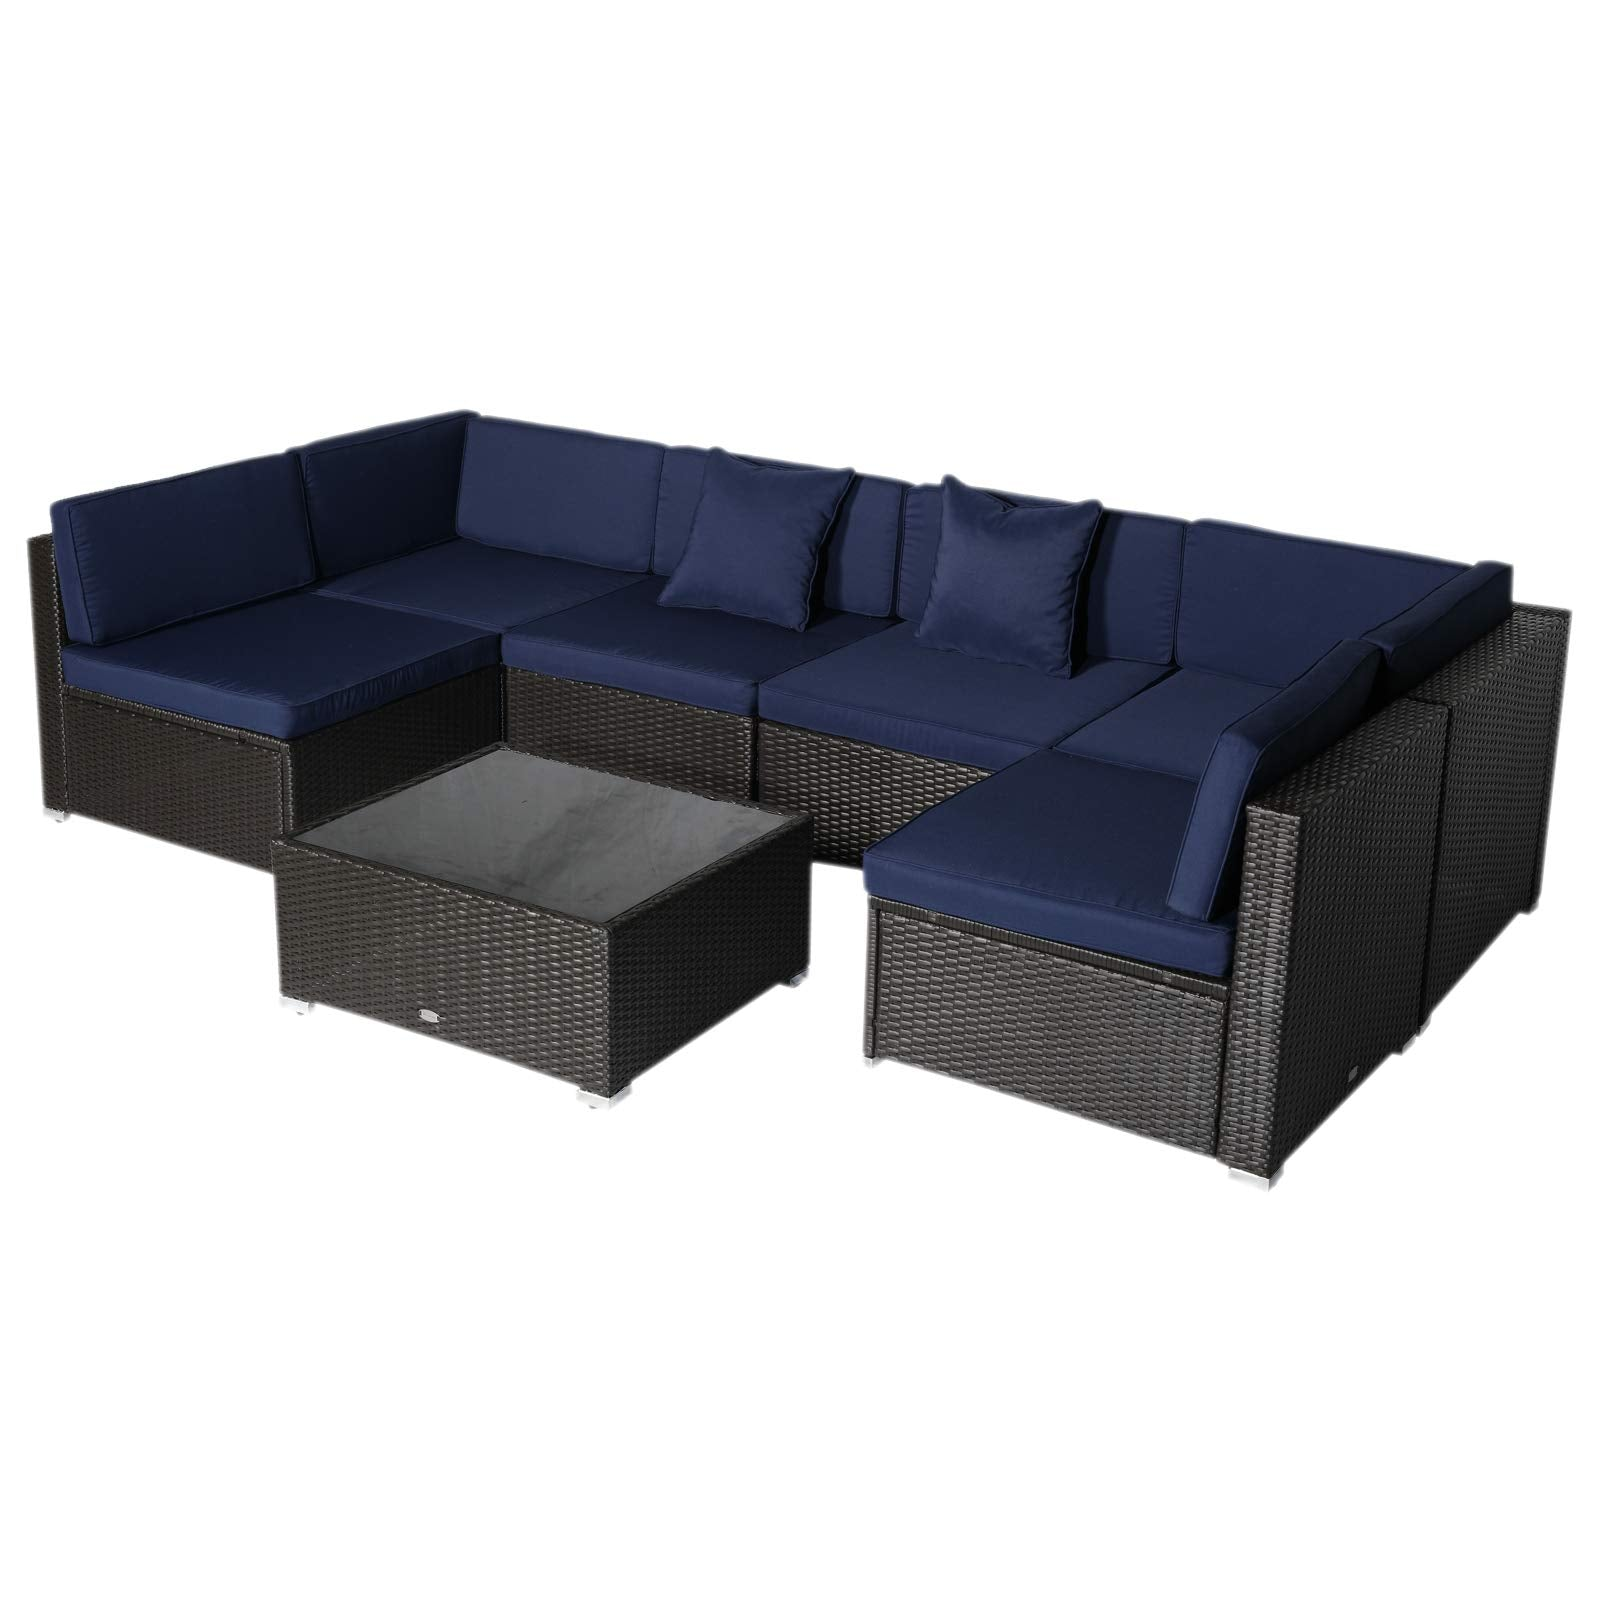 outsunny 7 piece outdoor patio furniture set with modern rattan wicker perfect for garden deck and backyard dark blue